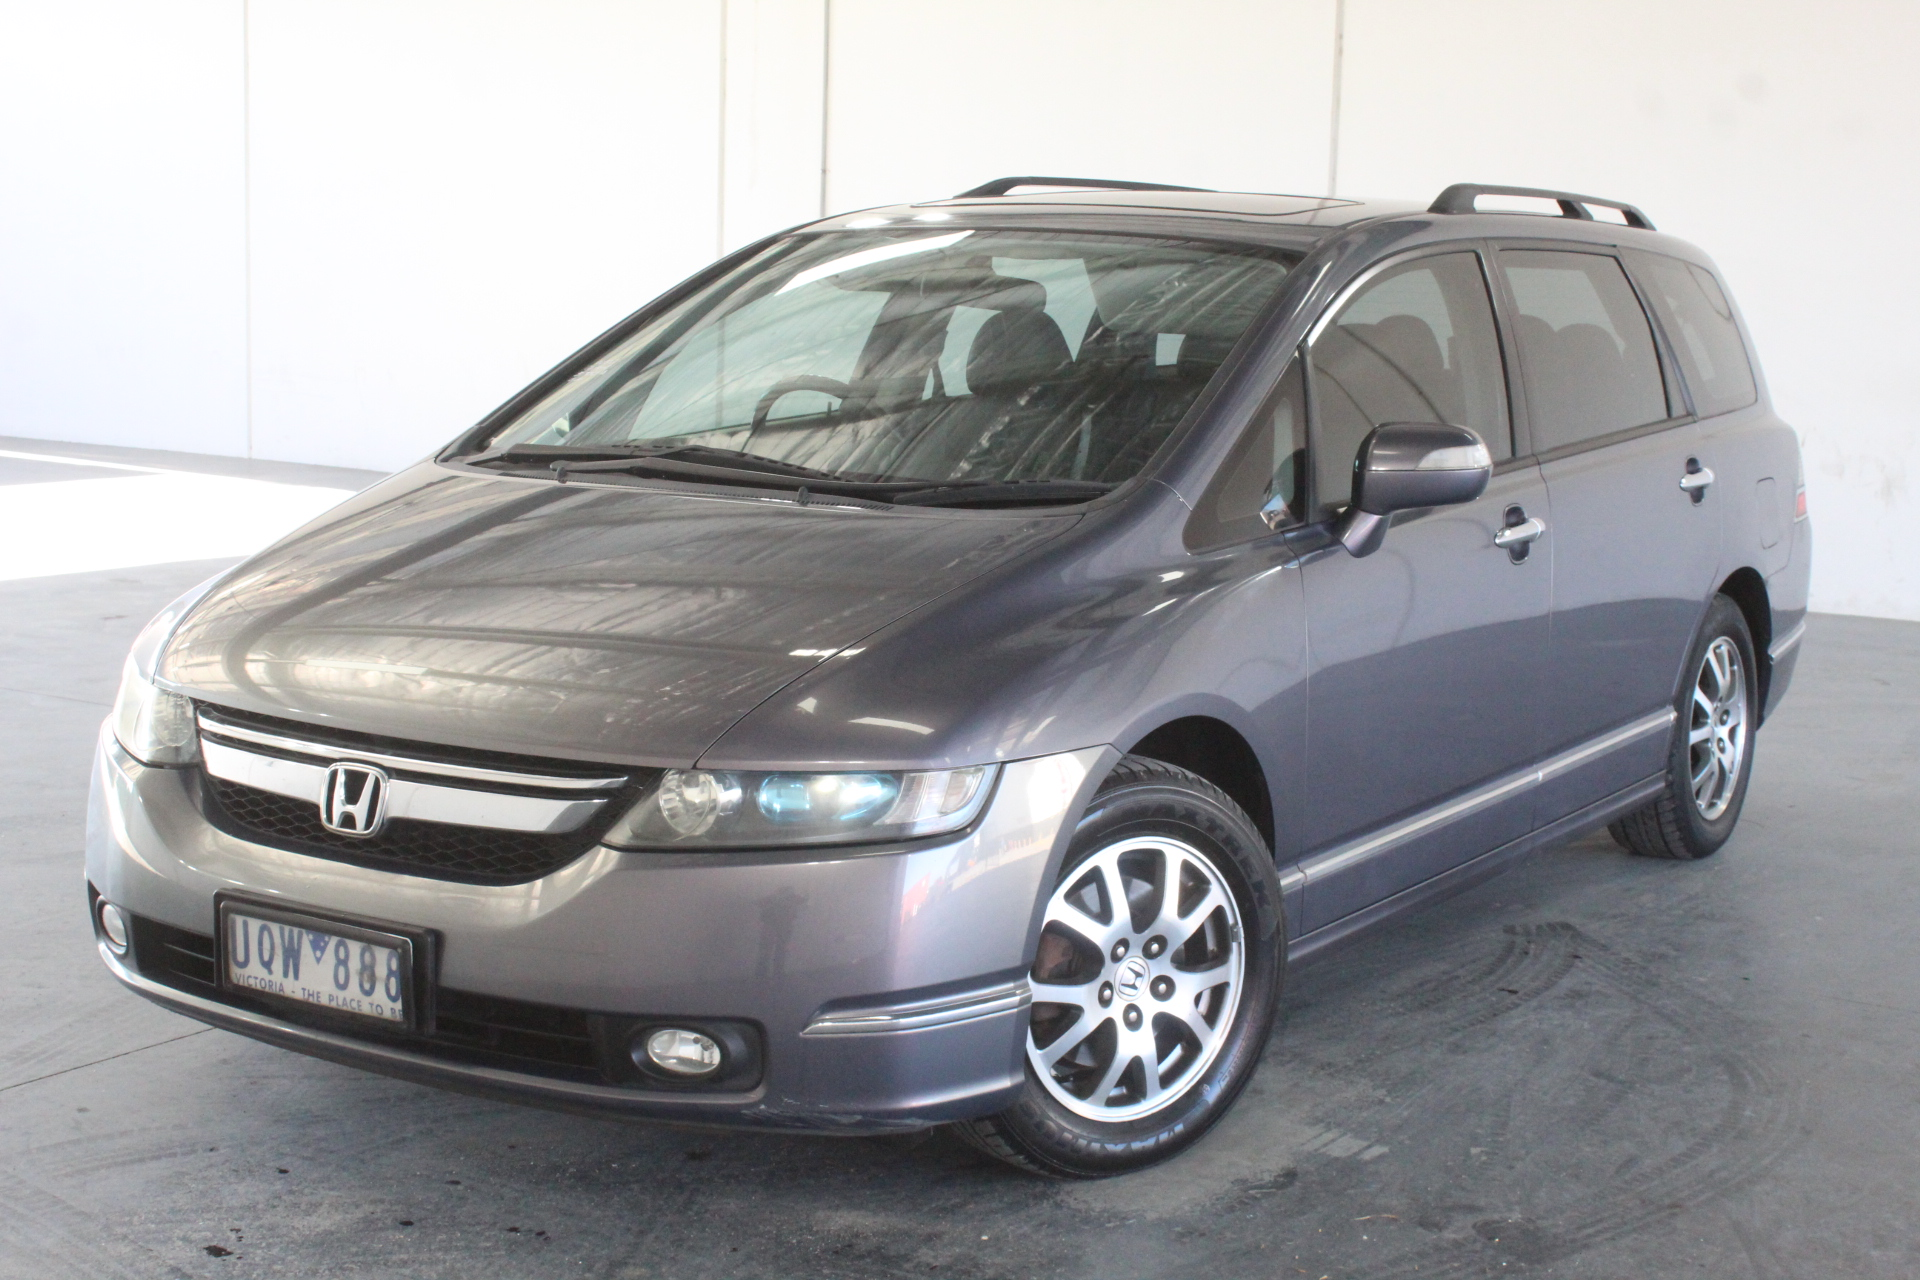 2007 Honda Odyssey Luxury Automatic 7 Seats People Mover